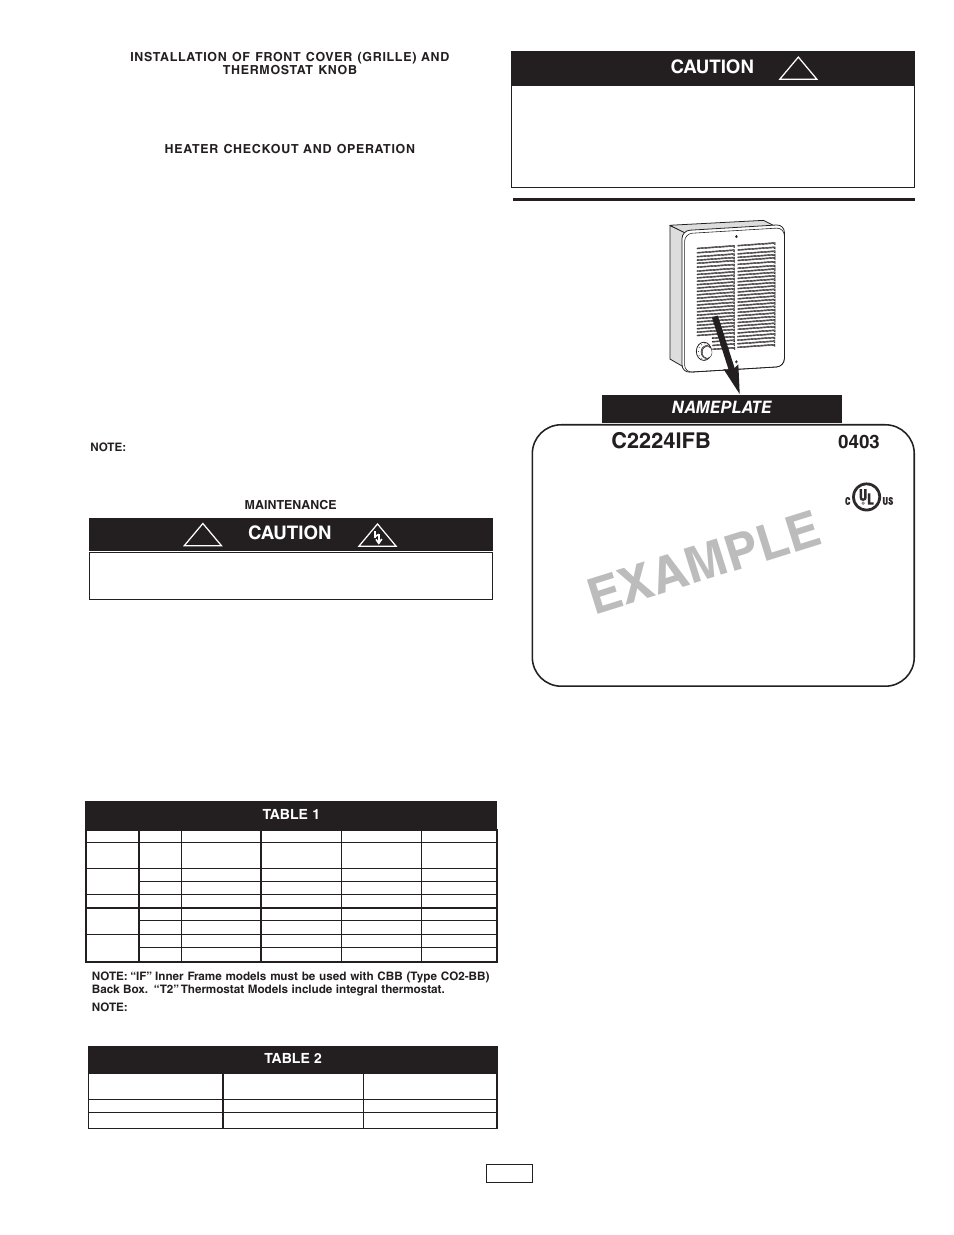 medium resolution of example c2224ifb caution qmark cra series residential fan forced zonal wall heaters user manual page 3 12